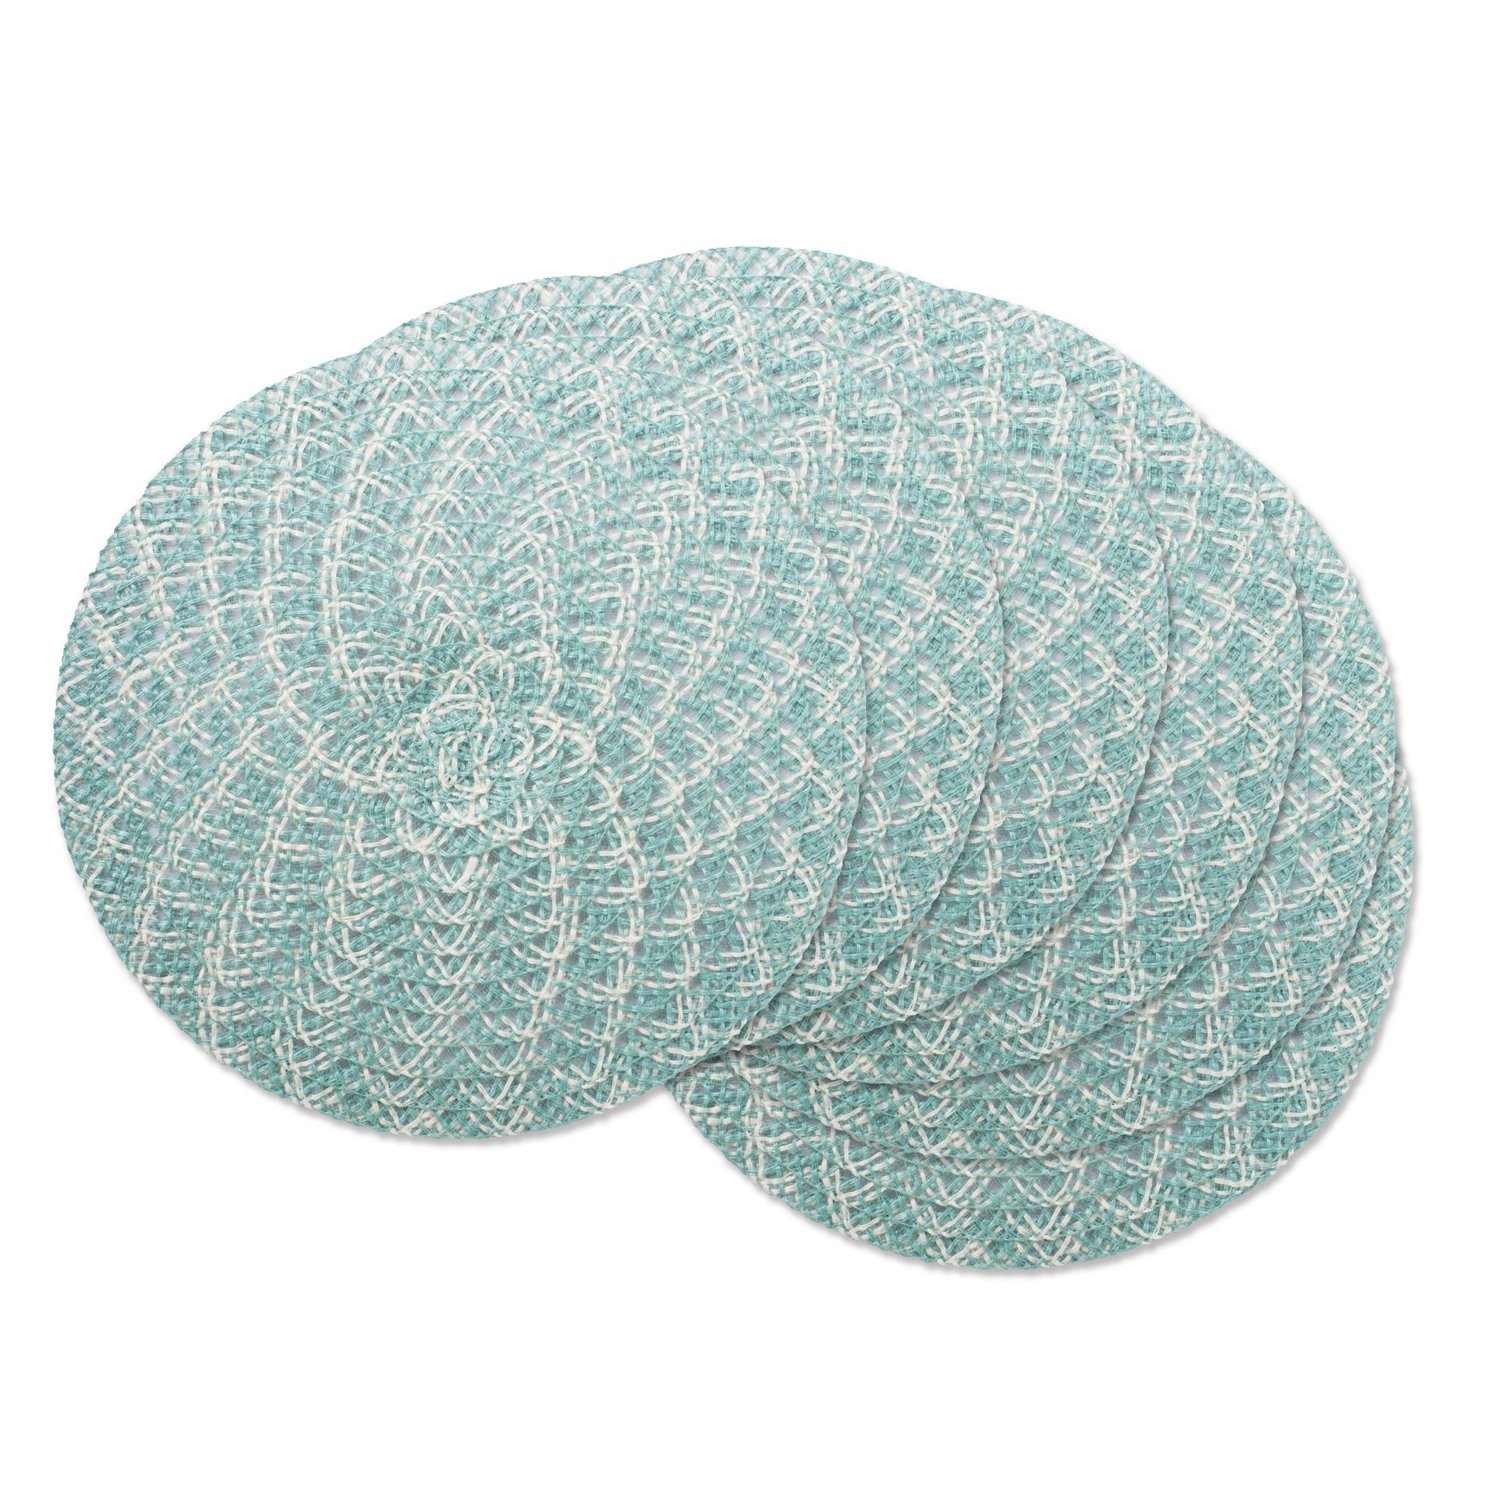 DII Round Woven, Indoor & Outdoor Braided Placemat or Charger, Set of 6, Garden Spa by DII (Image #1)